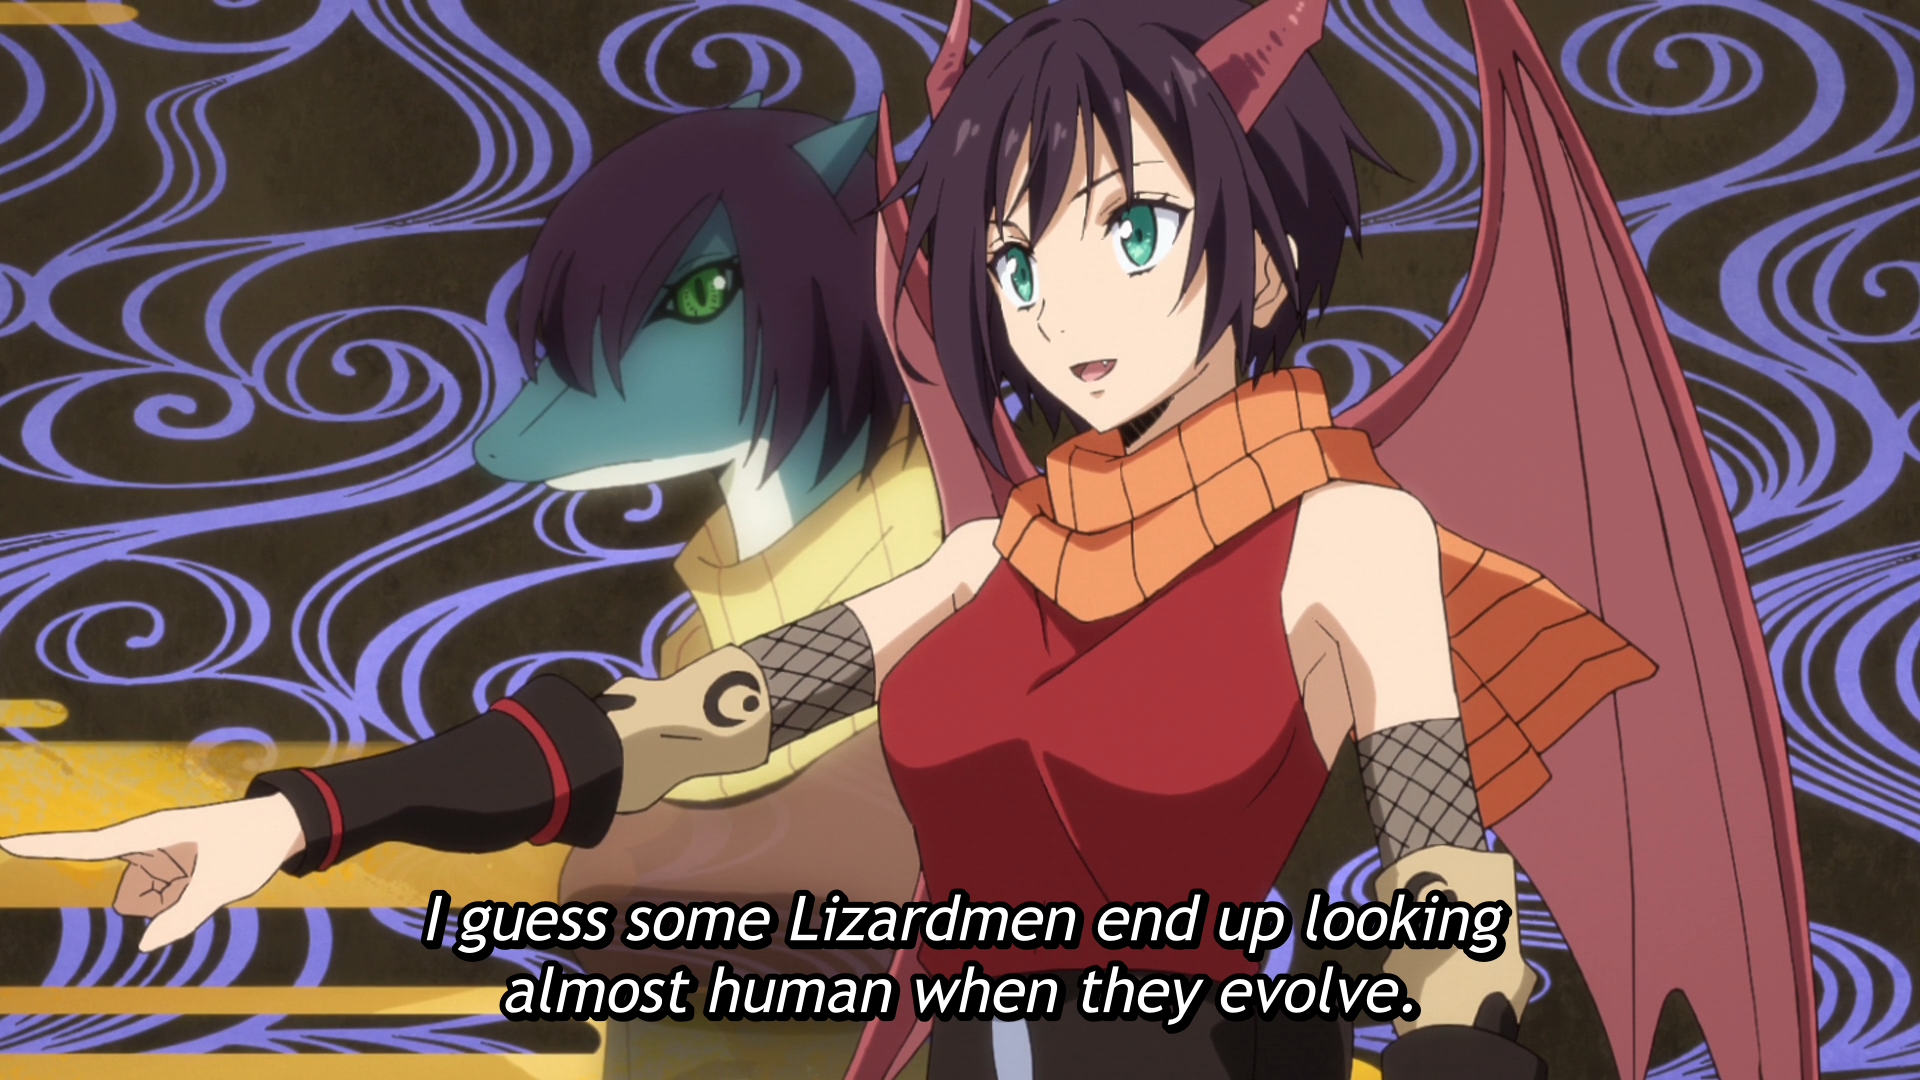 After receiving the name of 'Soka' from Rimiru, Gabiru's sister evolves from a reptilian-appearing Lizardman to a more human-looking Dragonewt in a scene from the That Time I Got Reincarnated as a Slime TV anime.